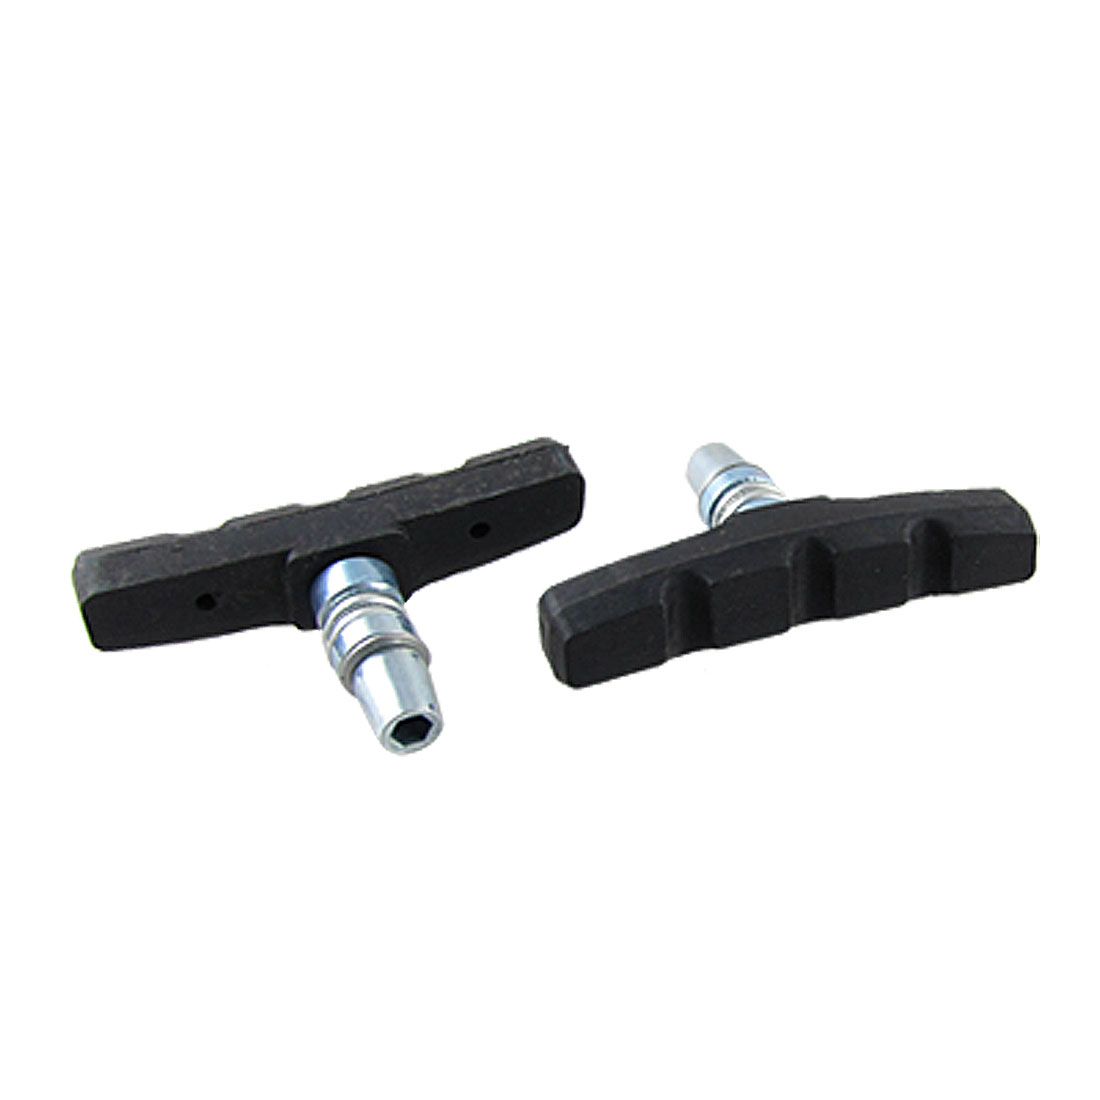 Mountain Bicycle Black Road Bike Rubber Brake Pads Pair